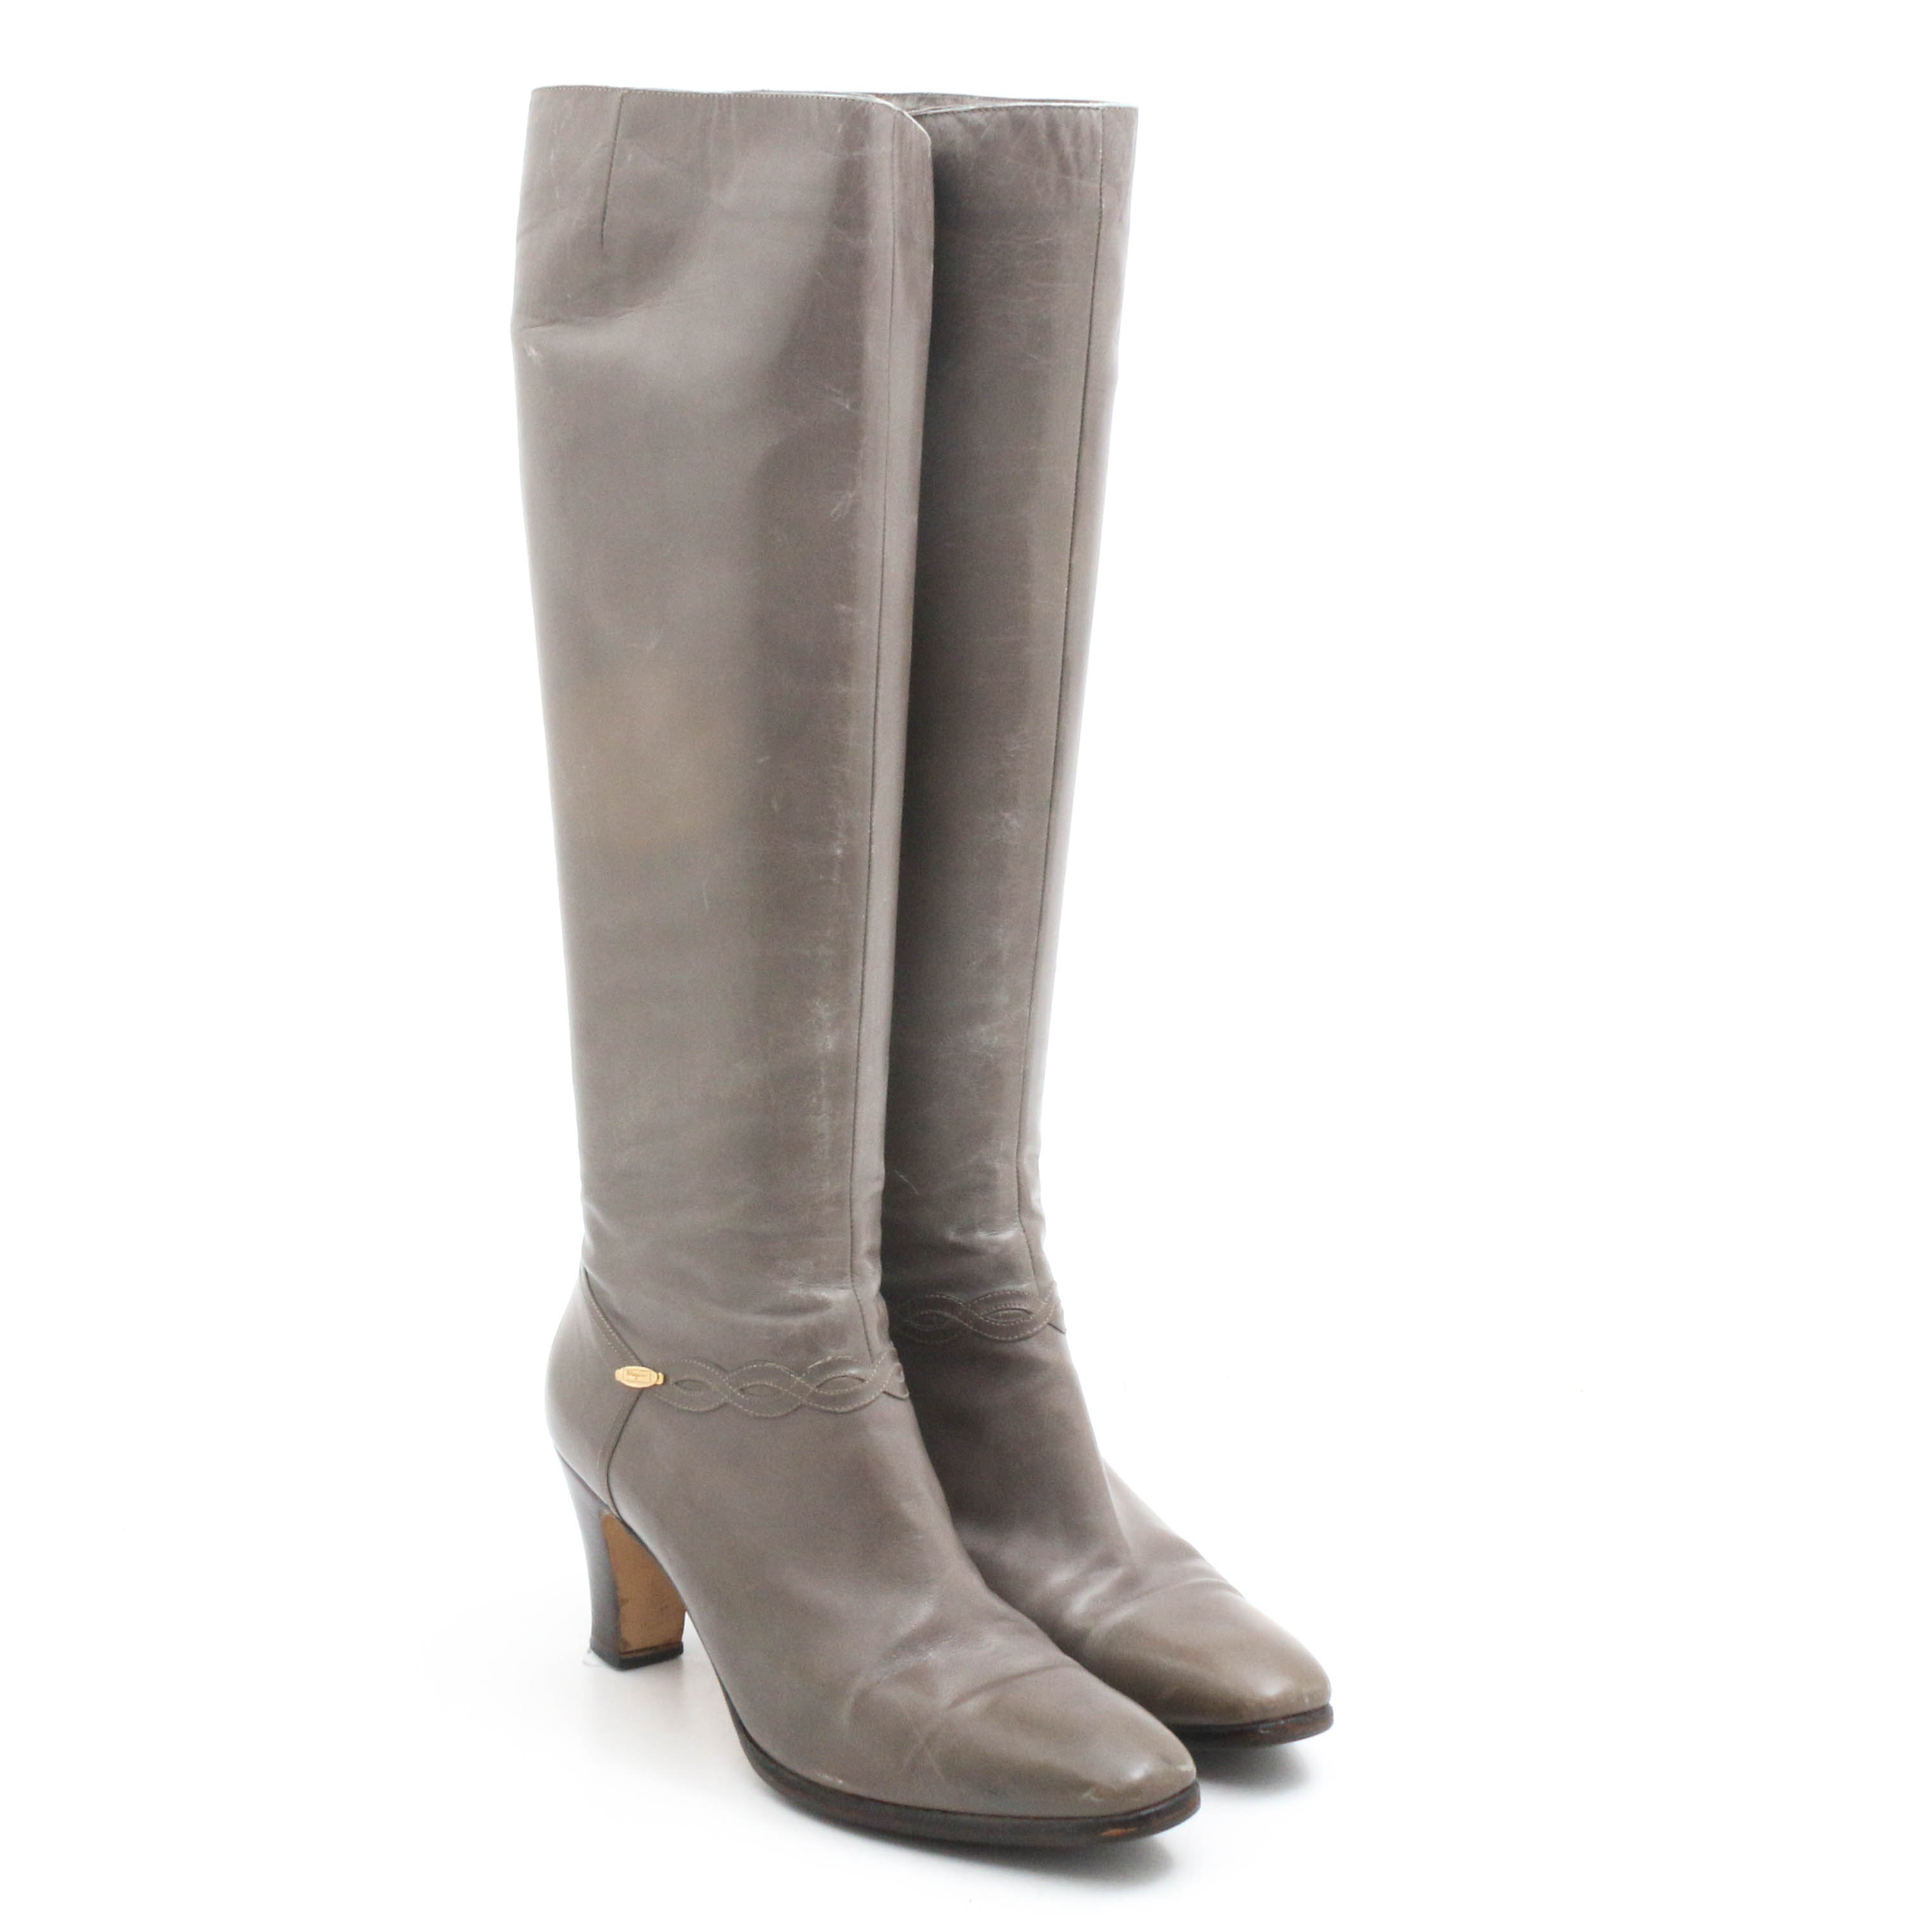 Salvatore Ferragamo Gray Leather Over-the-Knee Boots, Vintage